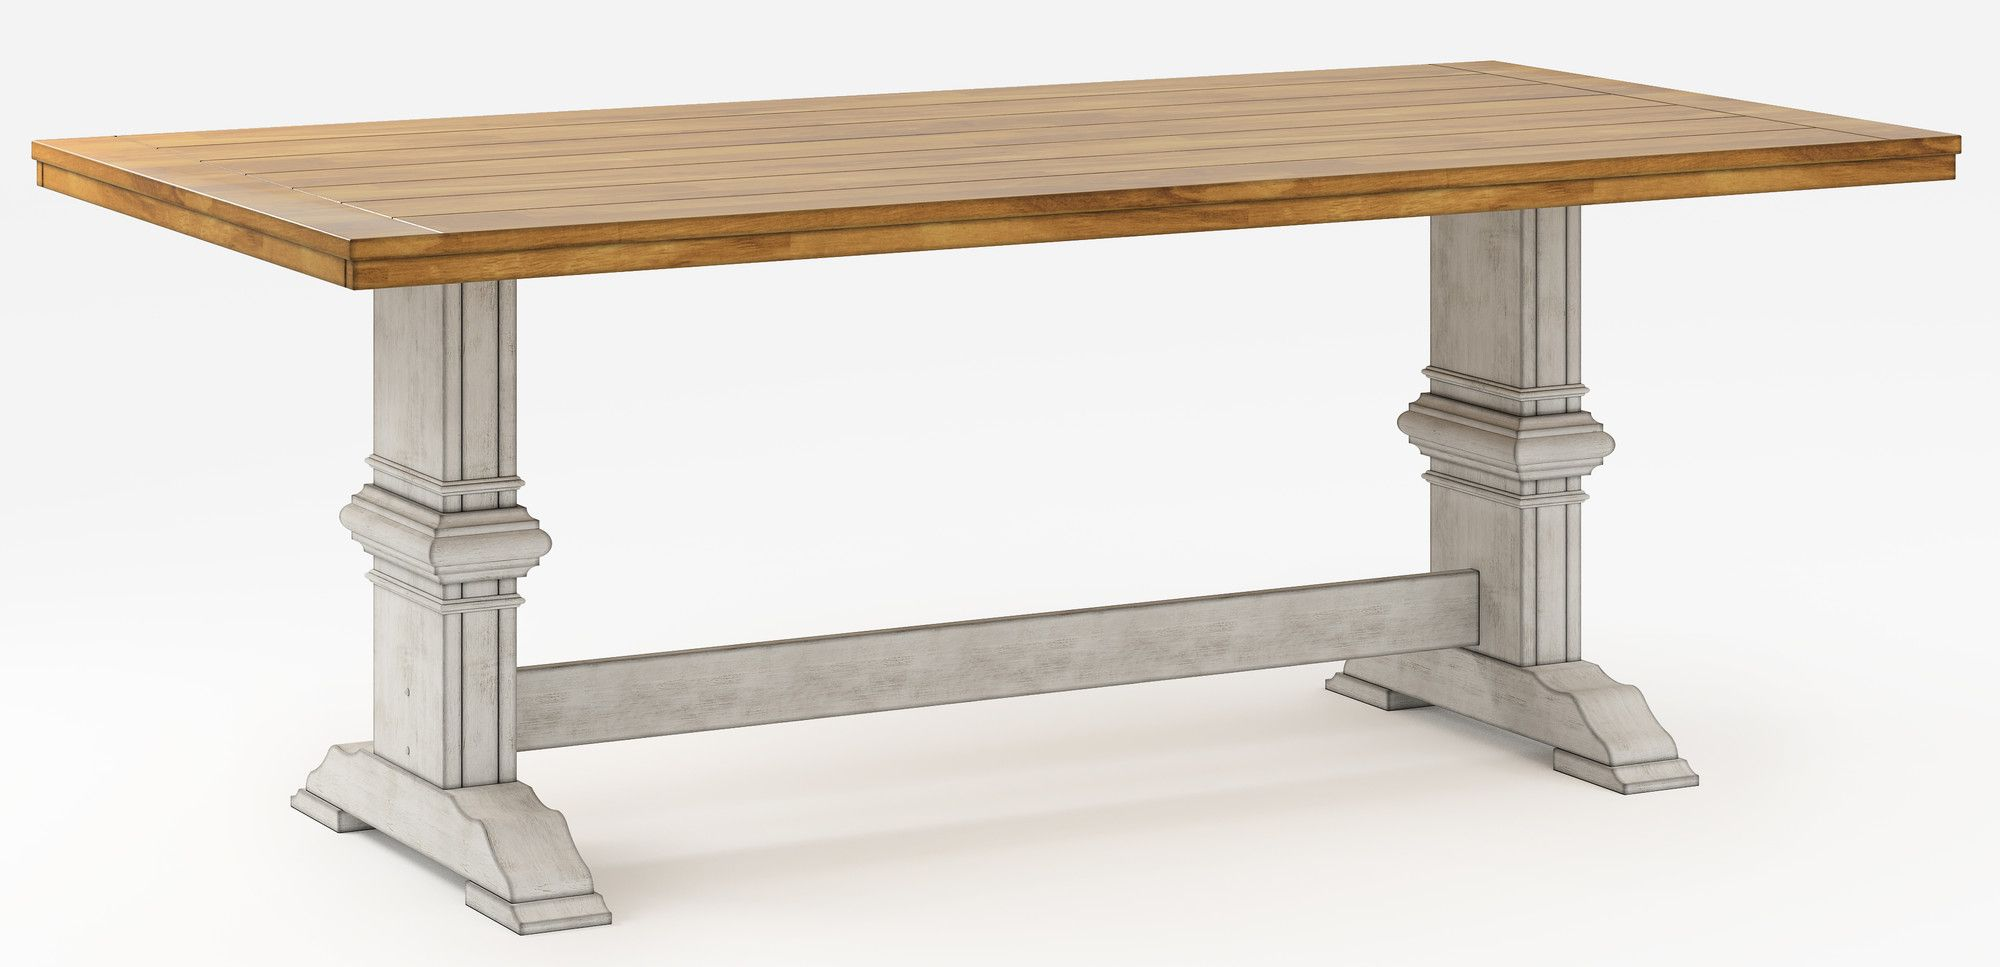 Contemporary dining table bases  Forcier Dining Table  Products  Pinterest  Products